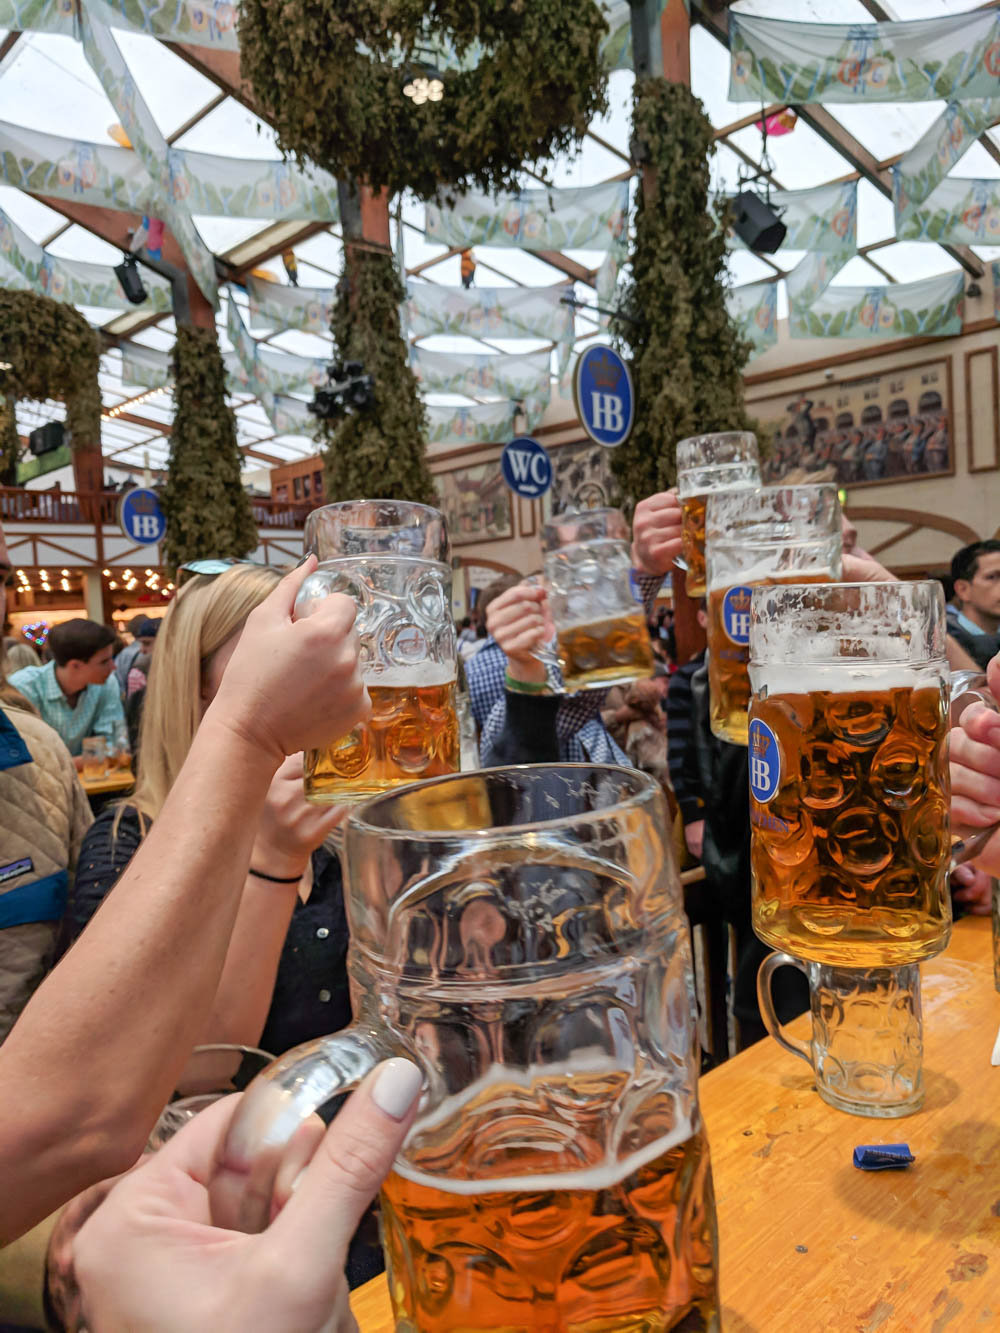 prosting Oktoberfest beers   Will Oktoberfest 2021 take place? Is Oktoberfest 2021 going to be canceled? All the info you need to know like what to do, how to plan ahead, official announcements out of Munich, Germany